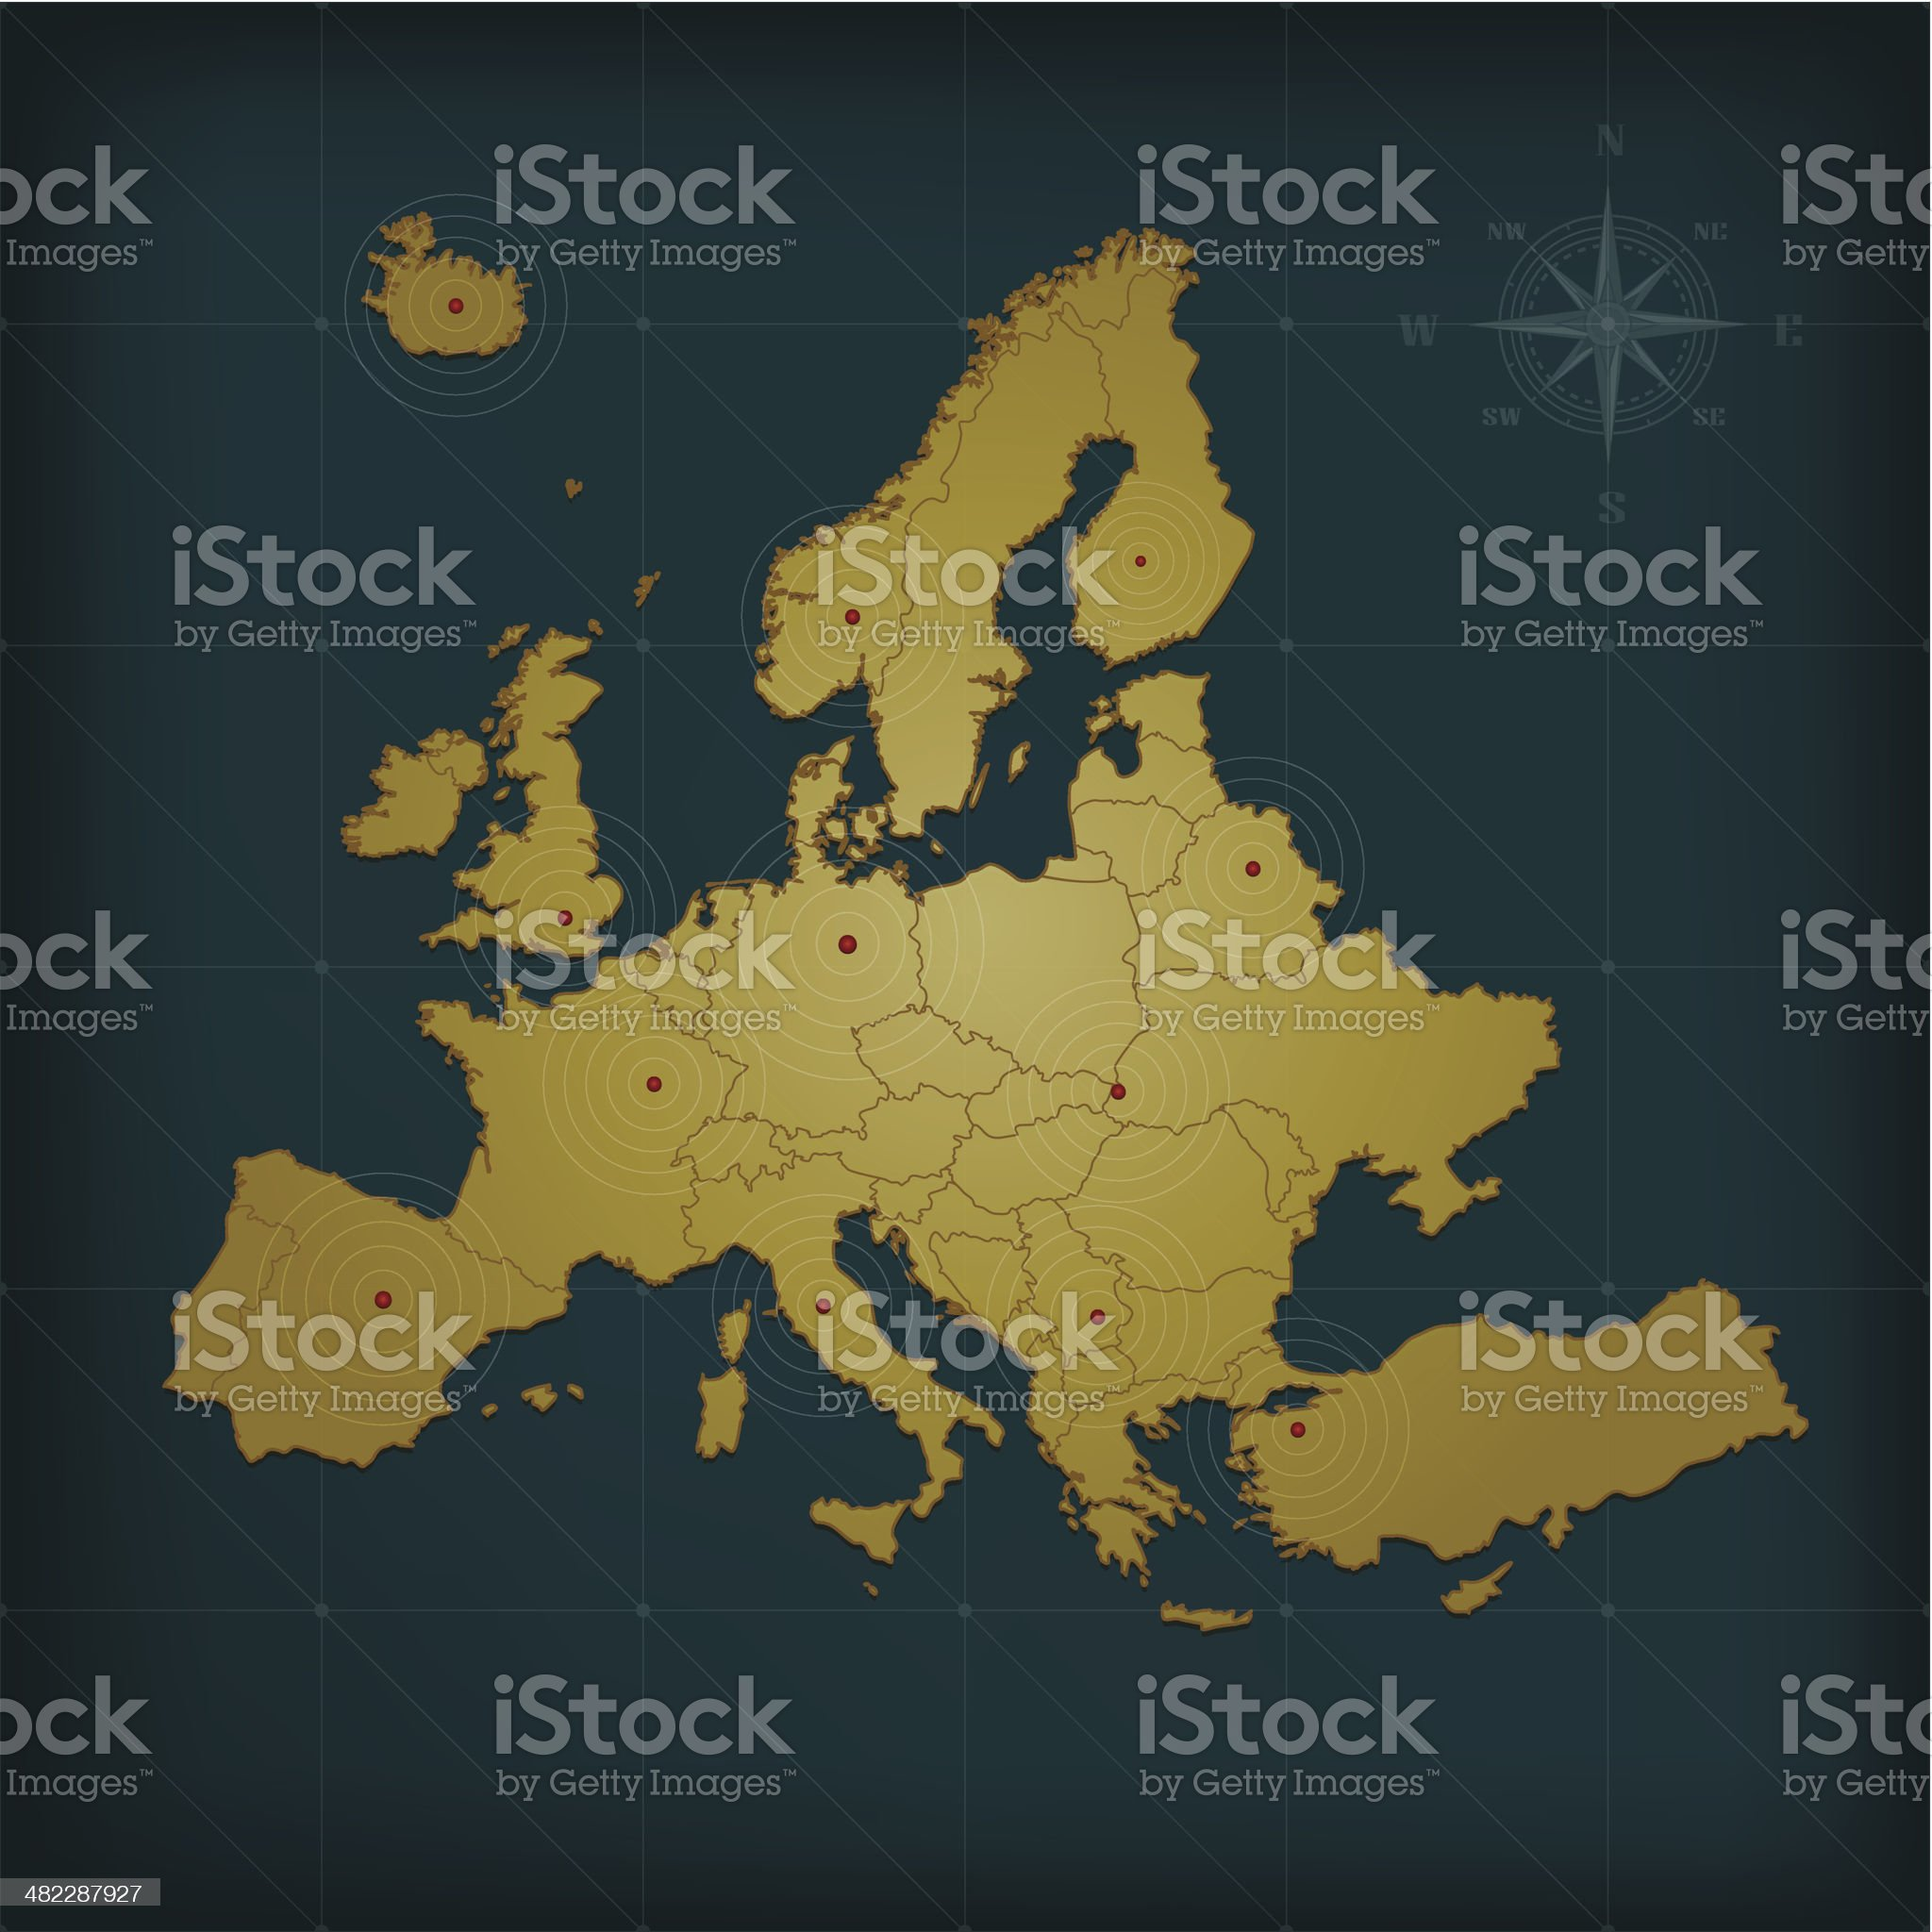 Europe map on dark background with grid and markers royalty-free stock vector art